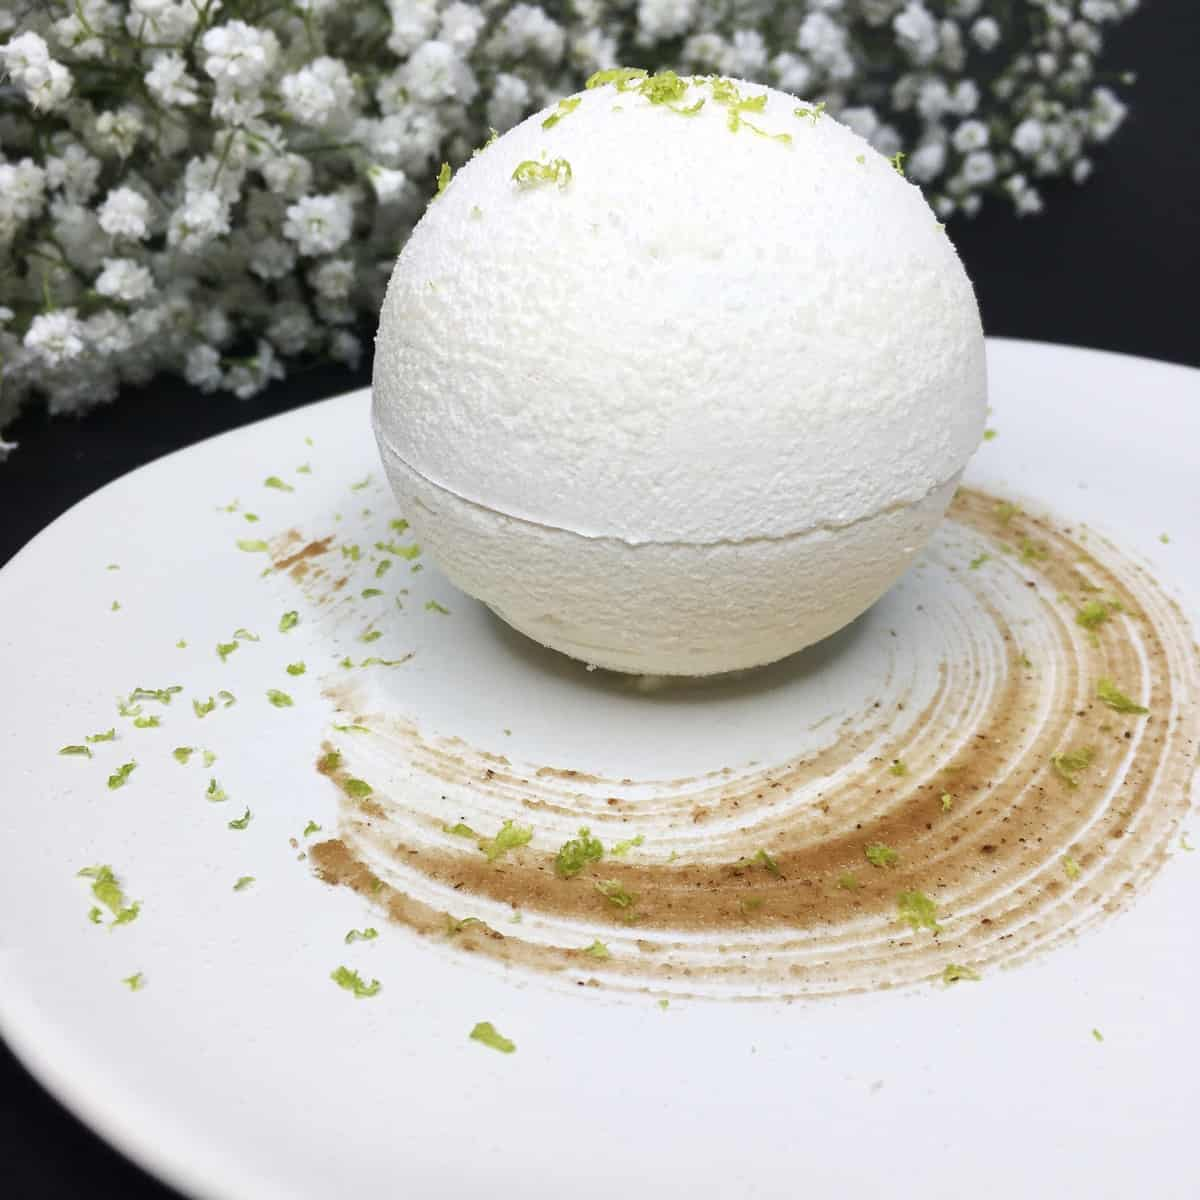 A single meringue ball served on a white plate with flowers aside